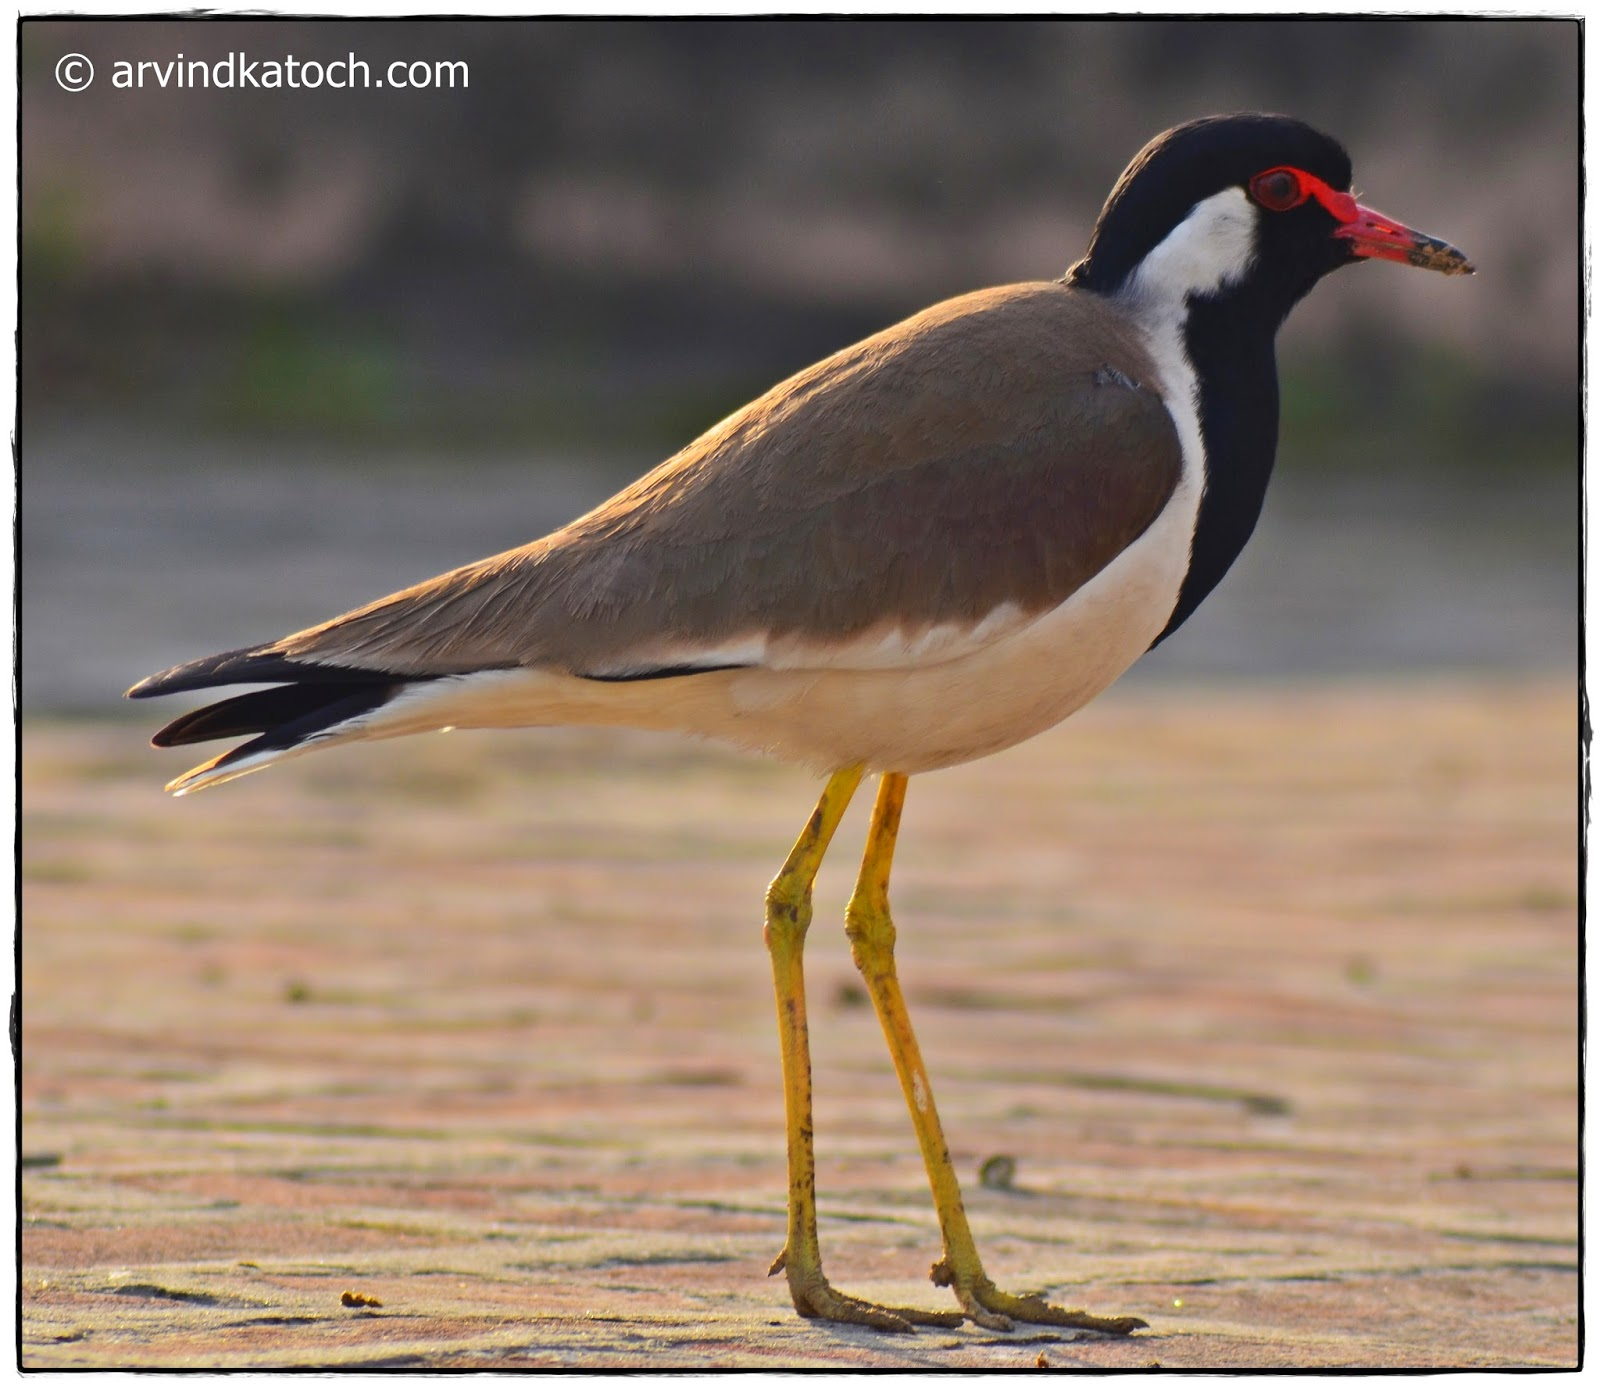 The Redwattled Lapwing Pictures and Detail A Bird with